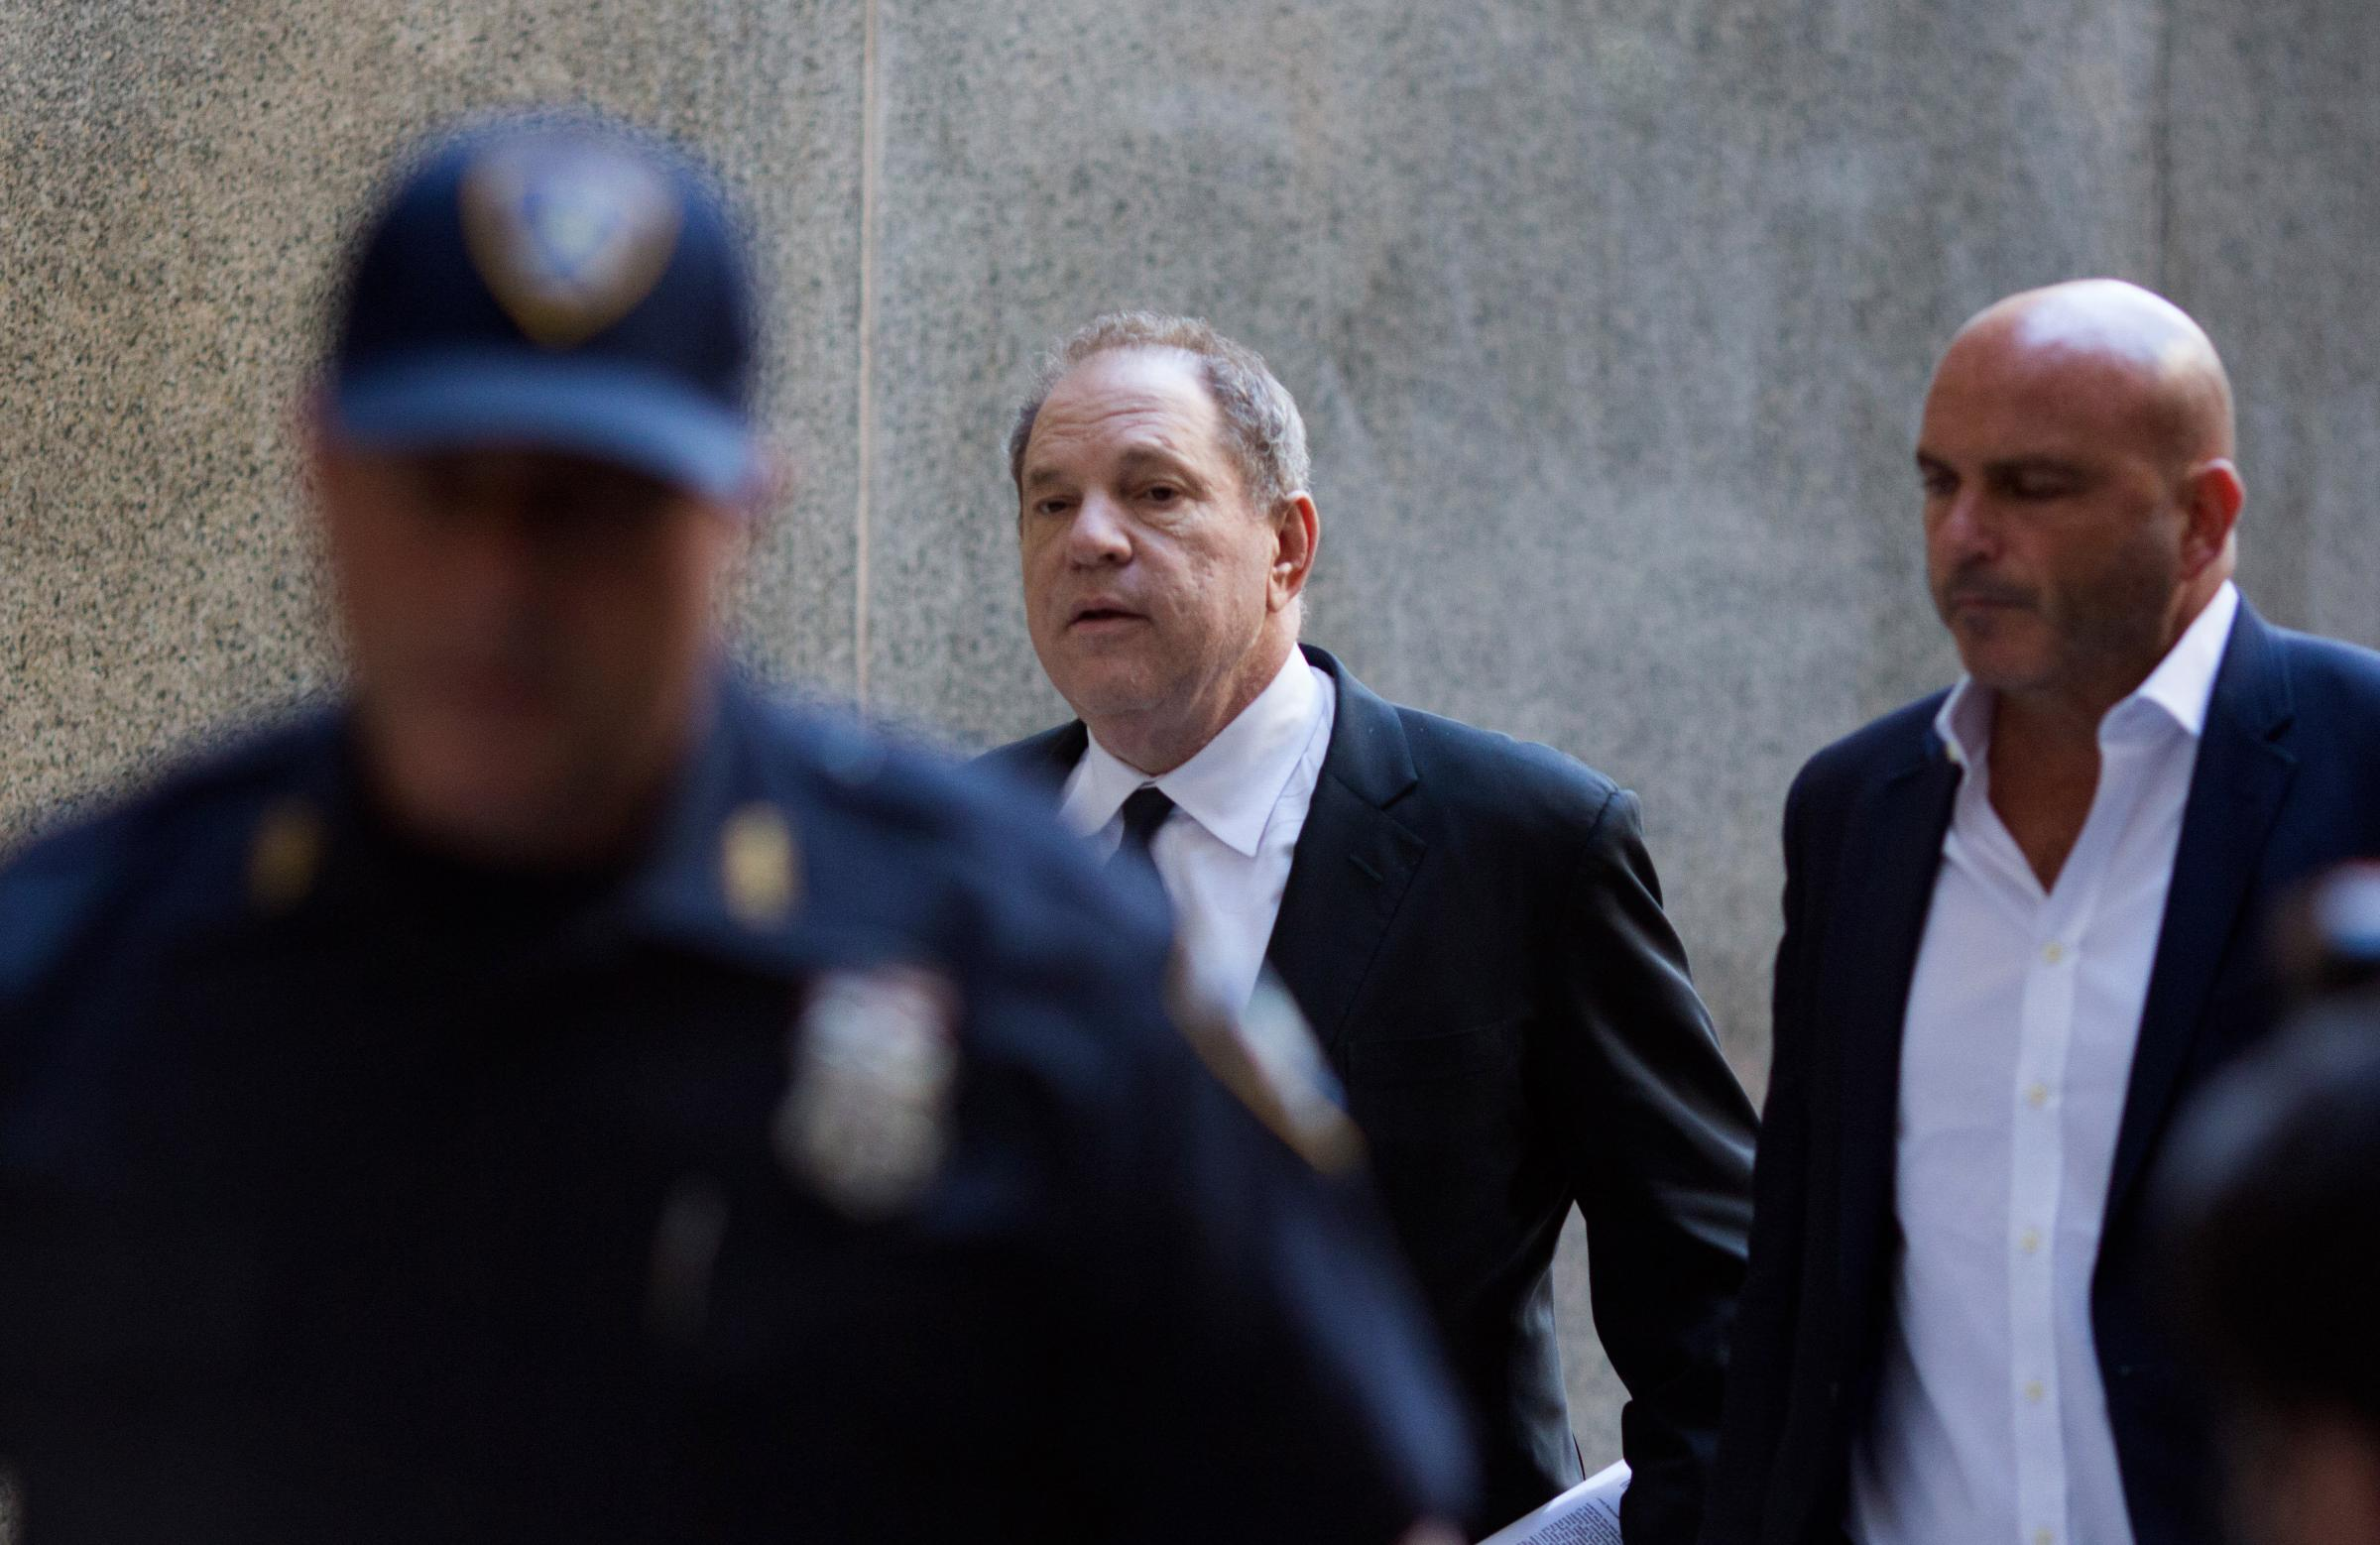 Harvey Weinstein arrives for a court appearance at Manhattan Criminal Court in New York City